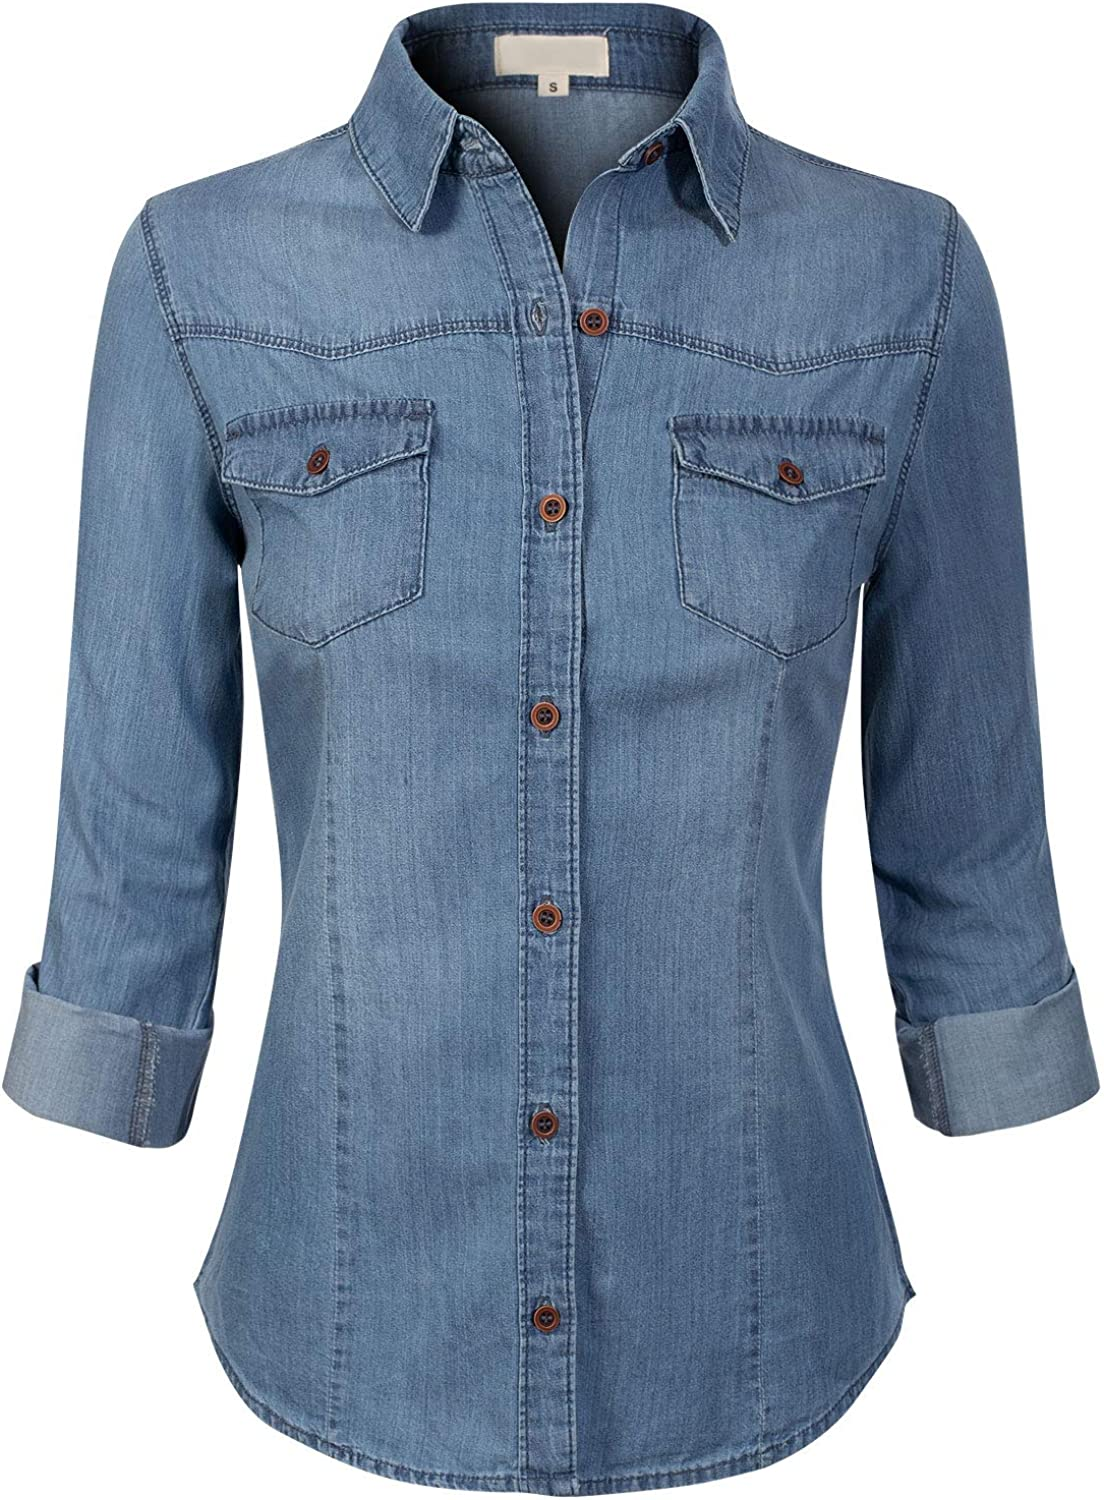 Design by Olivia Women's Roll up Sleeve Button Down Chambray Denim Shirt (S-3XL)